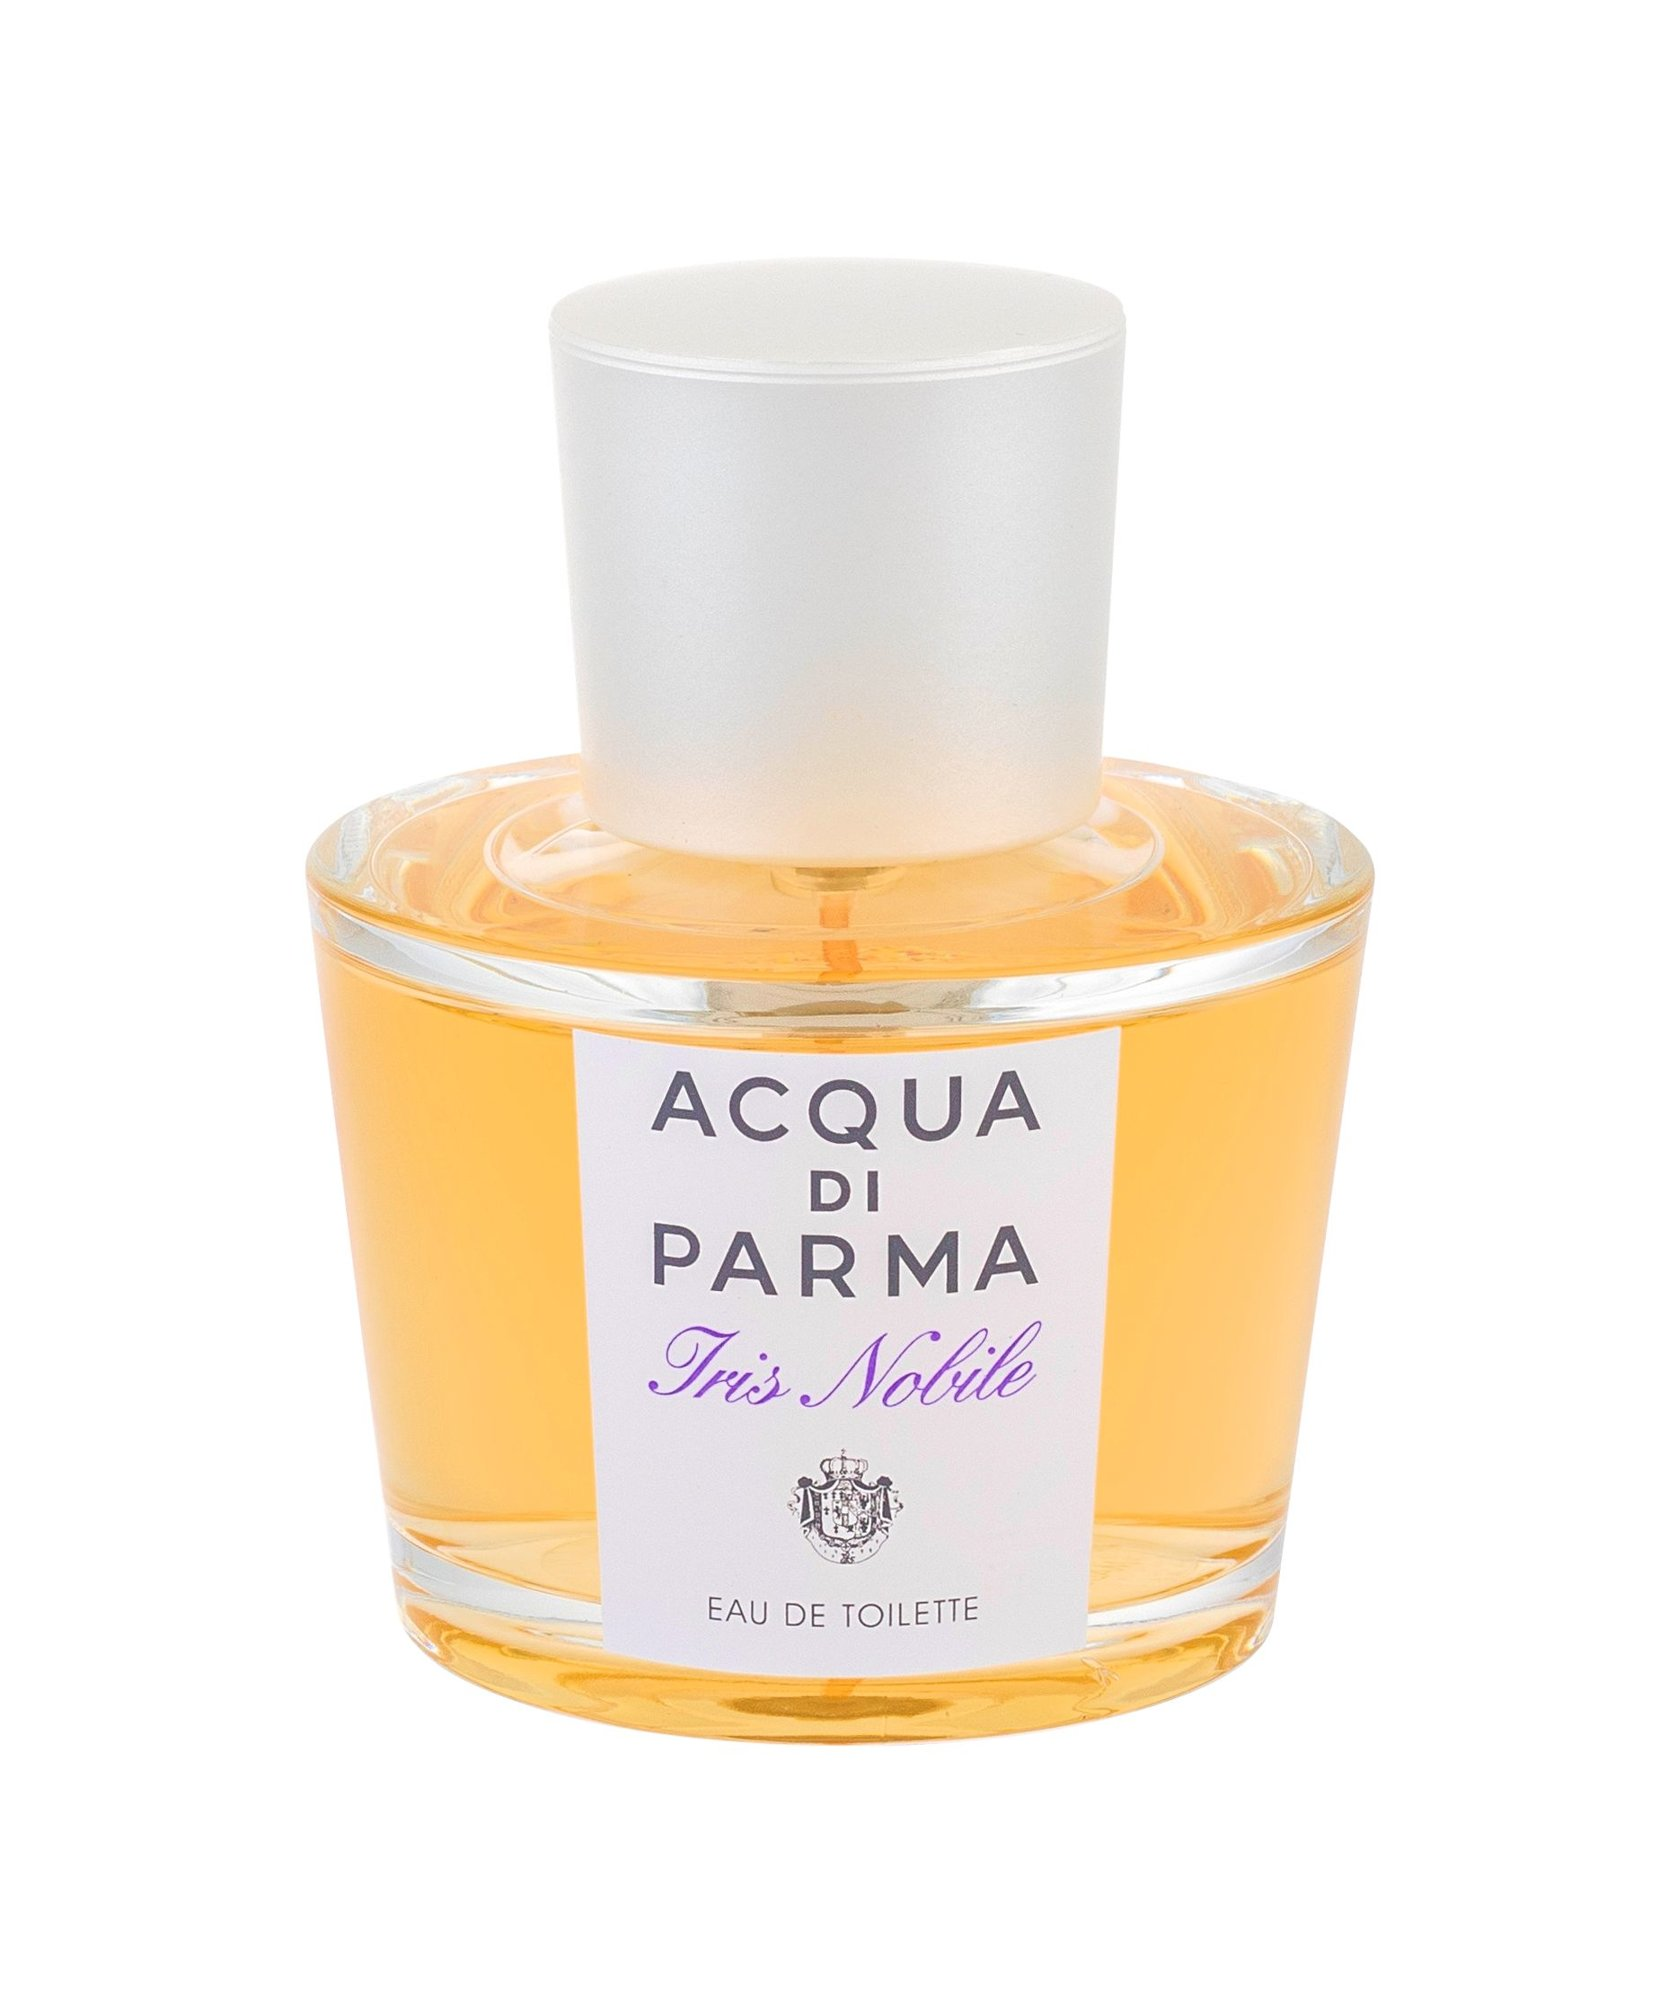 Acqua di Parma Iris Nobile EDT 50ml